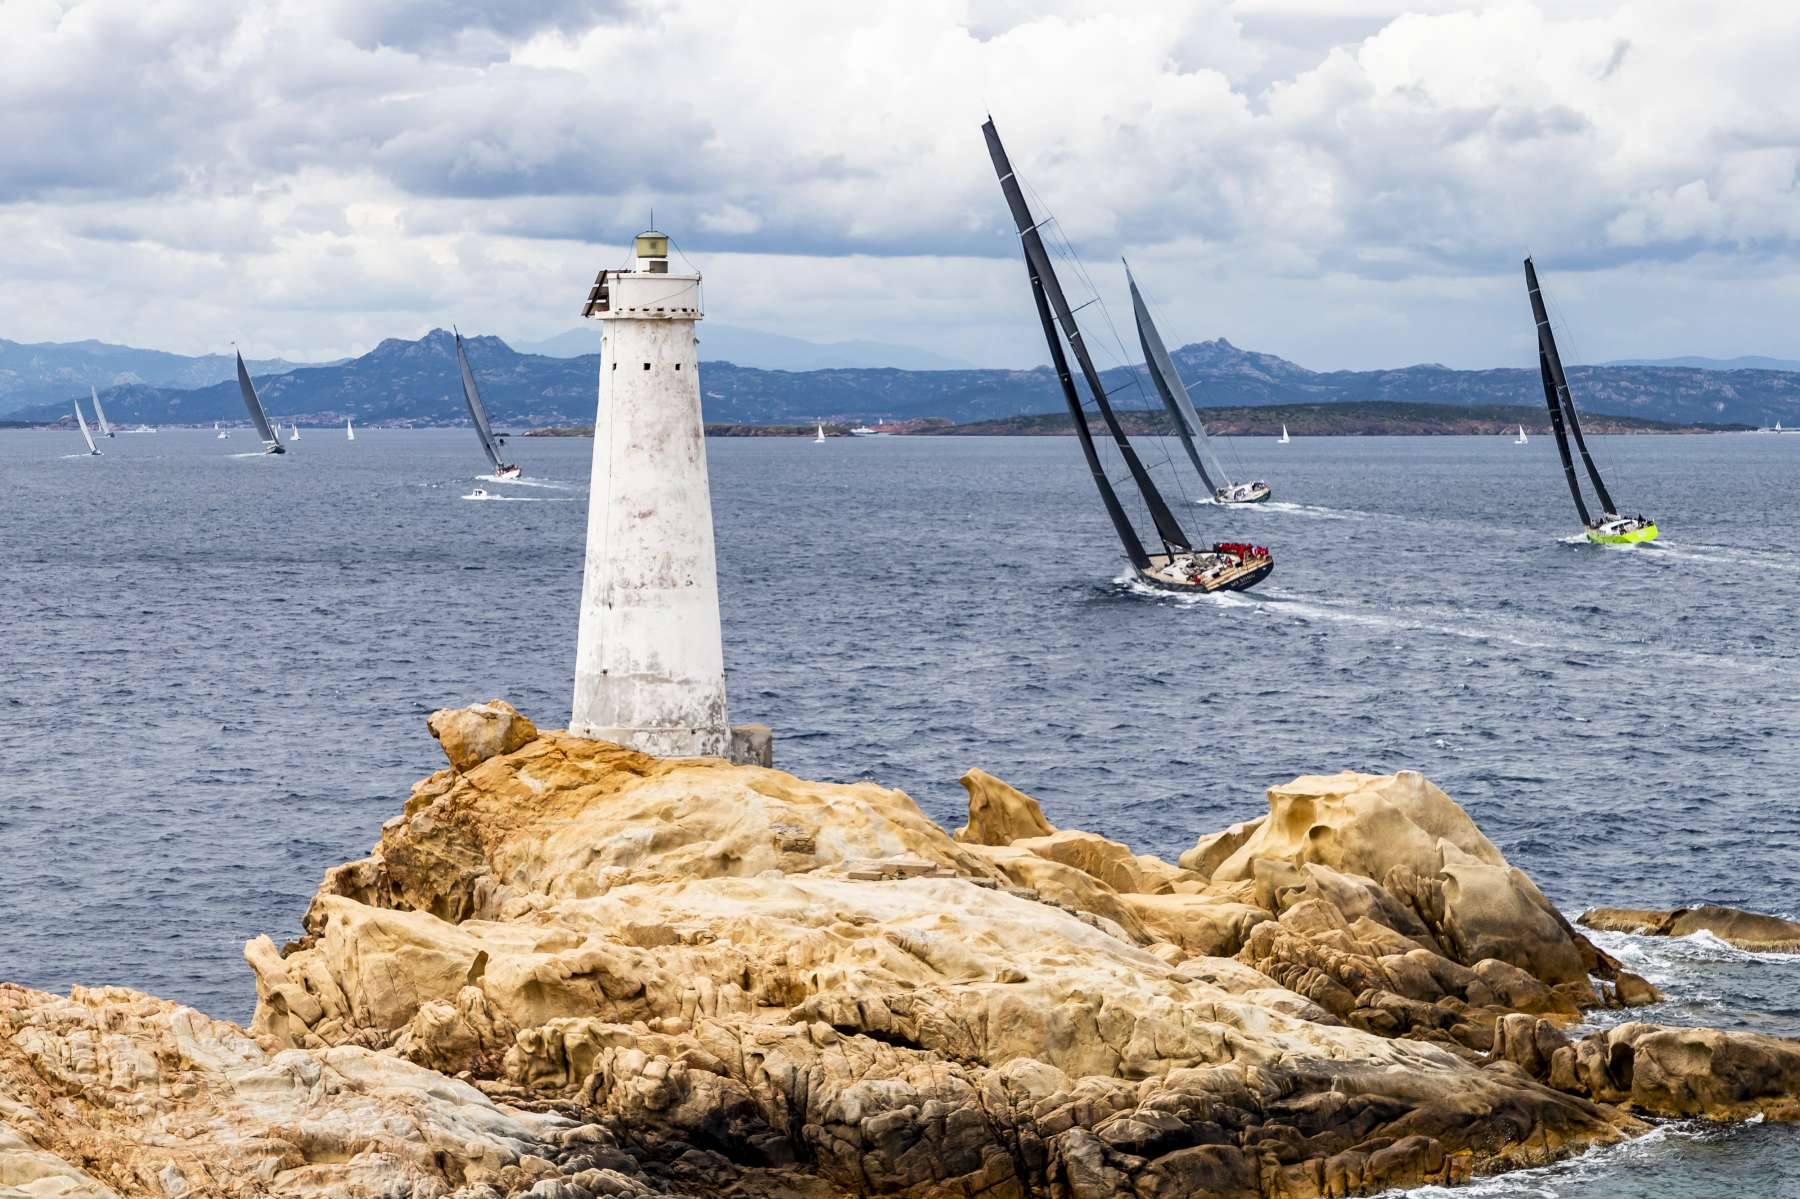 Loro Piana Superyacht Regatta opens to multihull entries - NEWS - Yacht Club Costa Smeralda